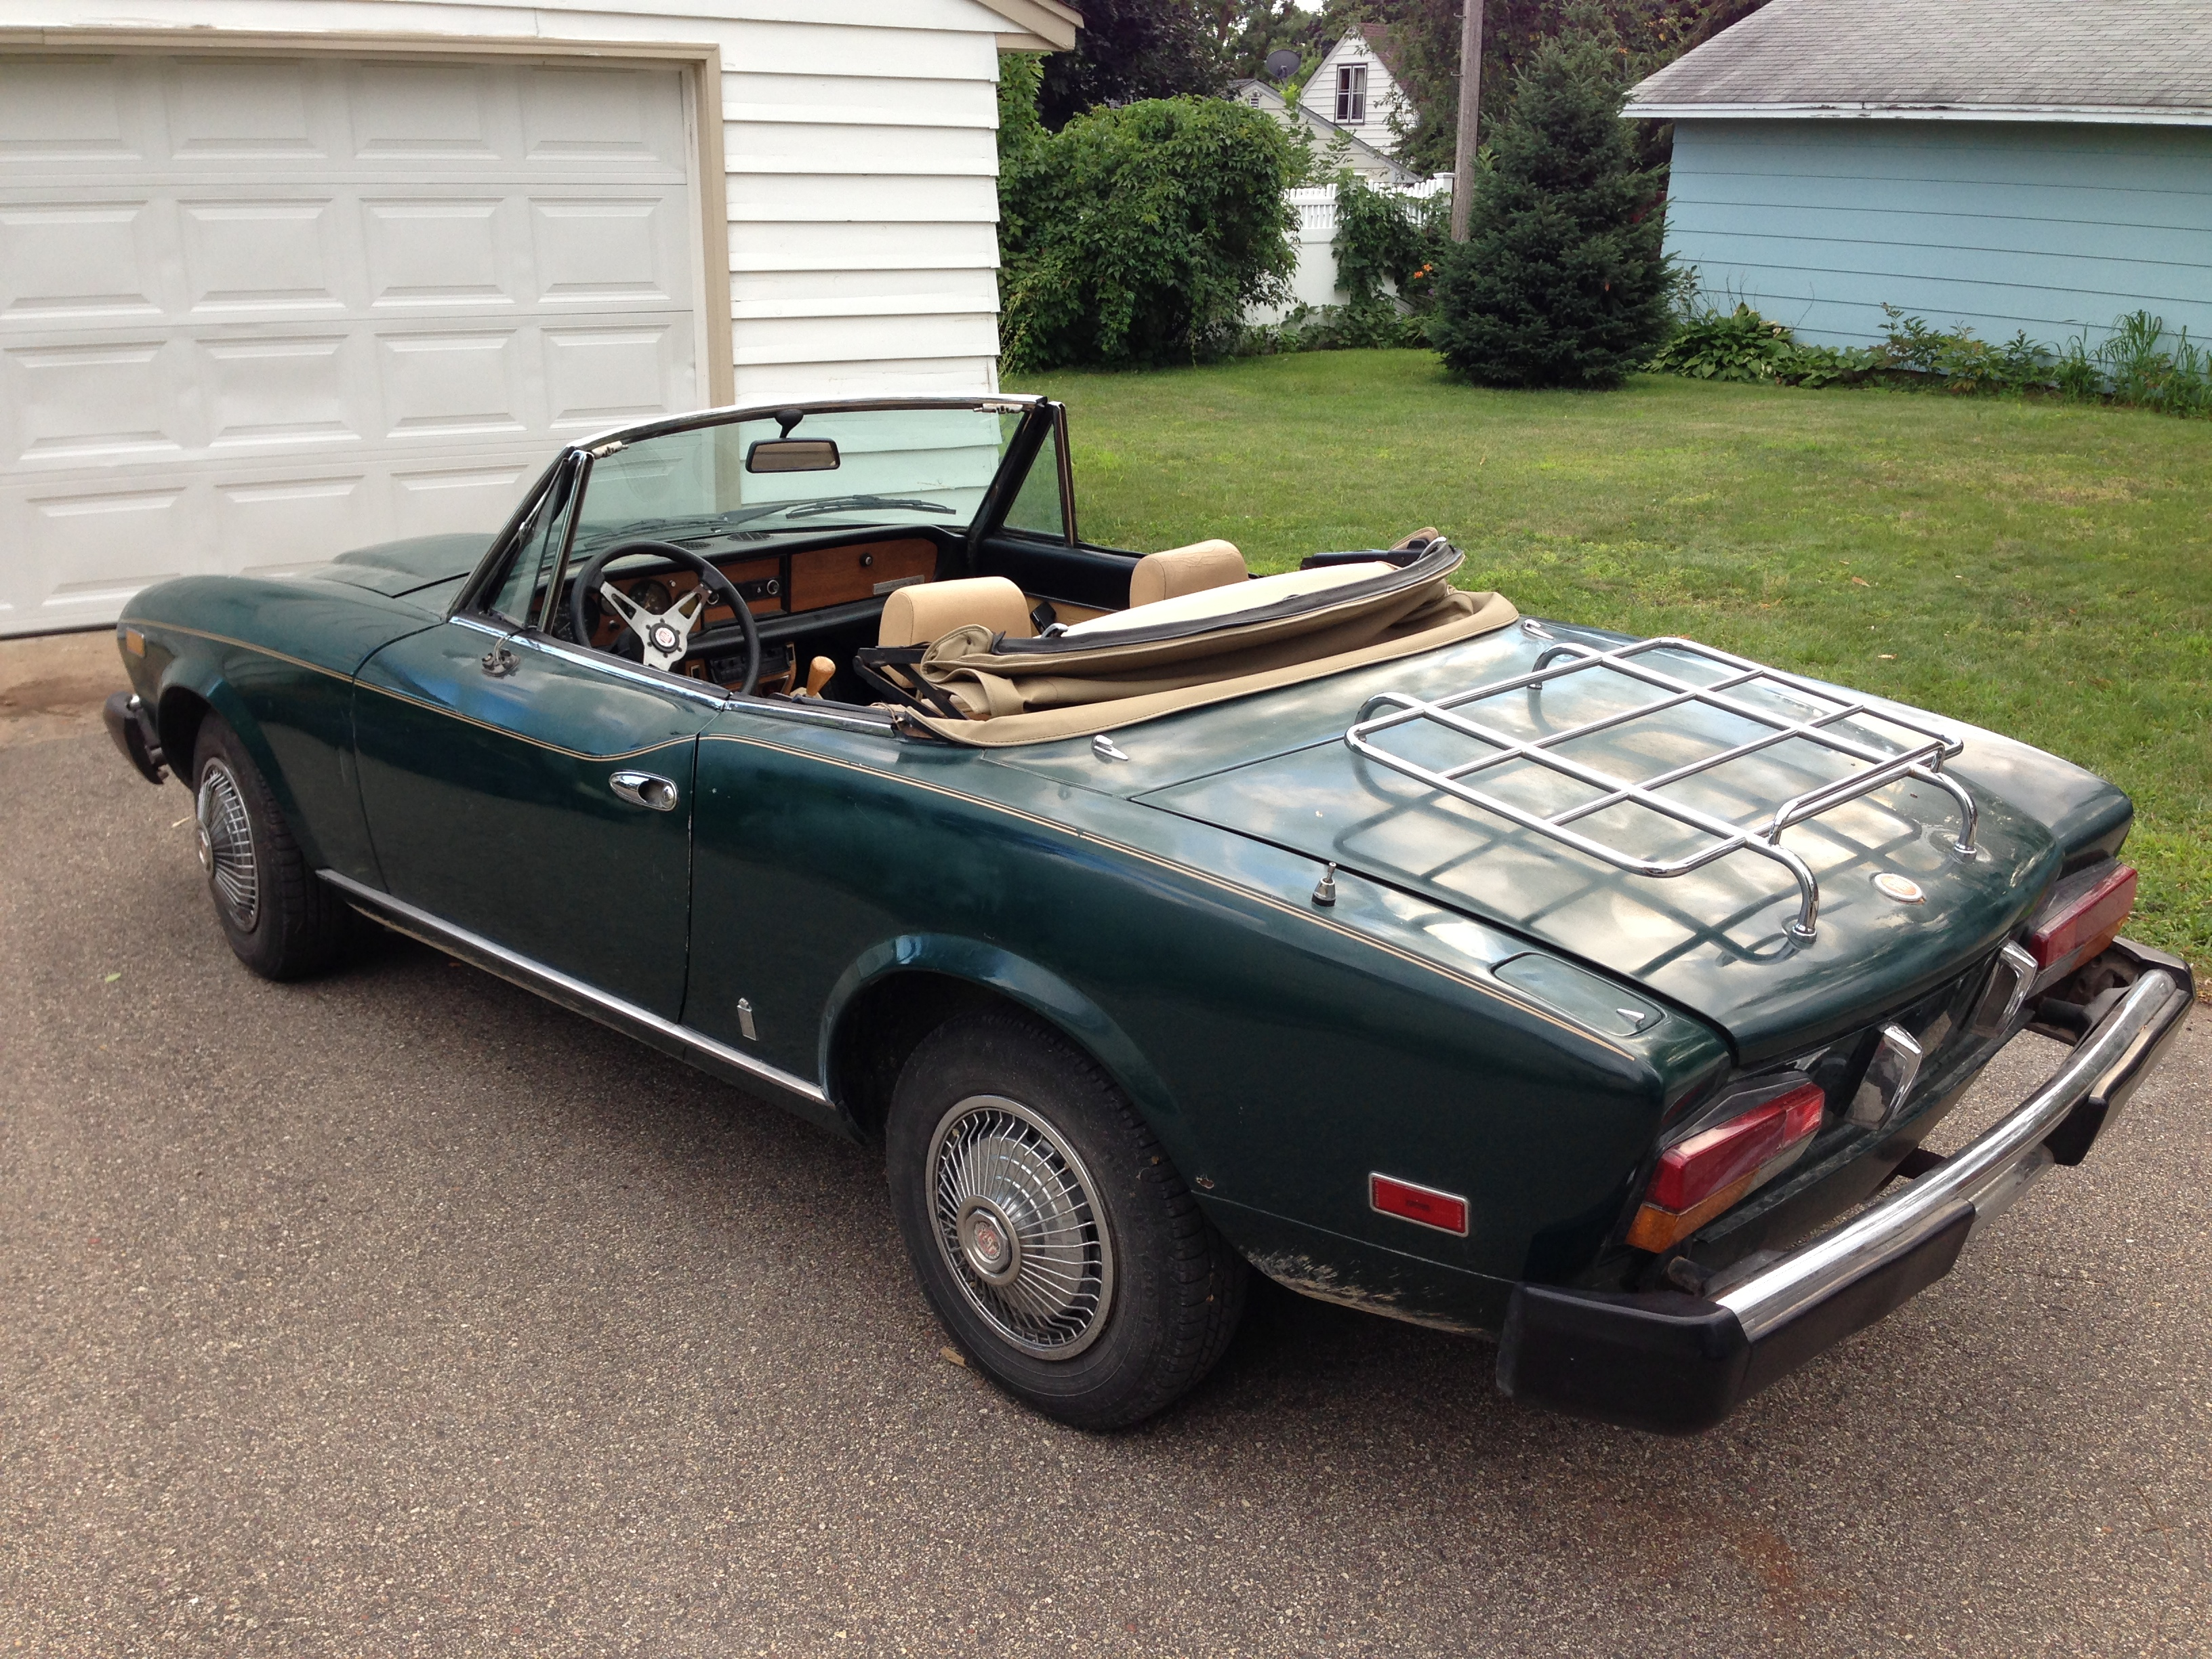 Fiat Convertible Classic price used for sale free image download